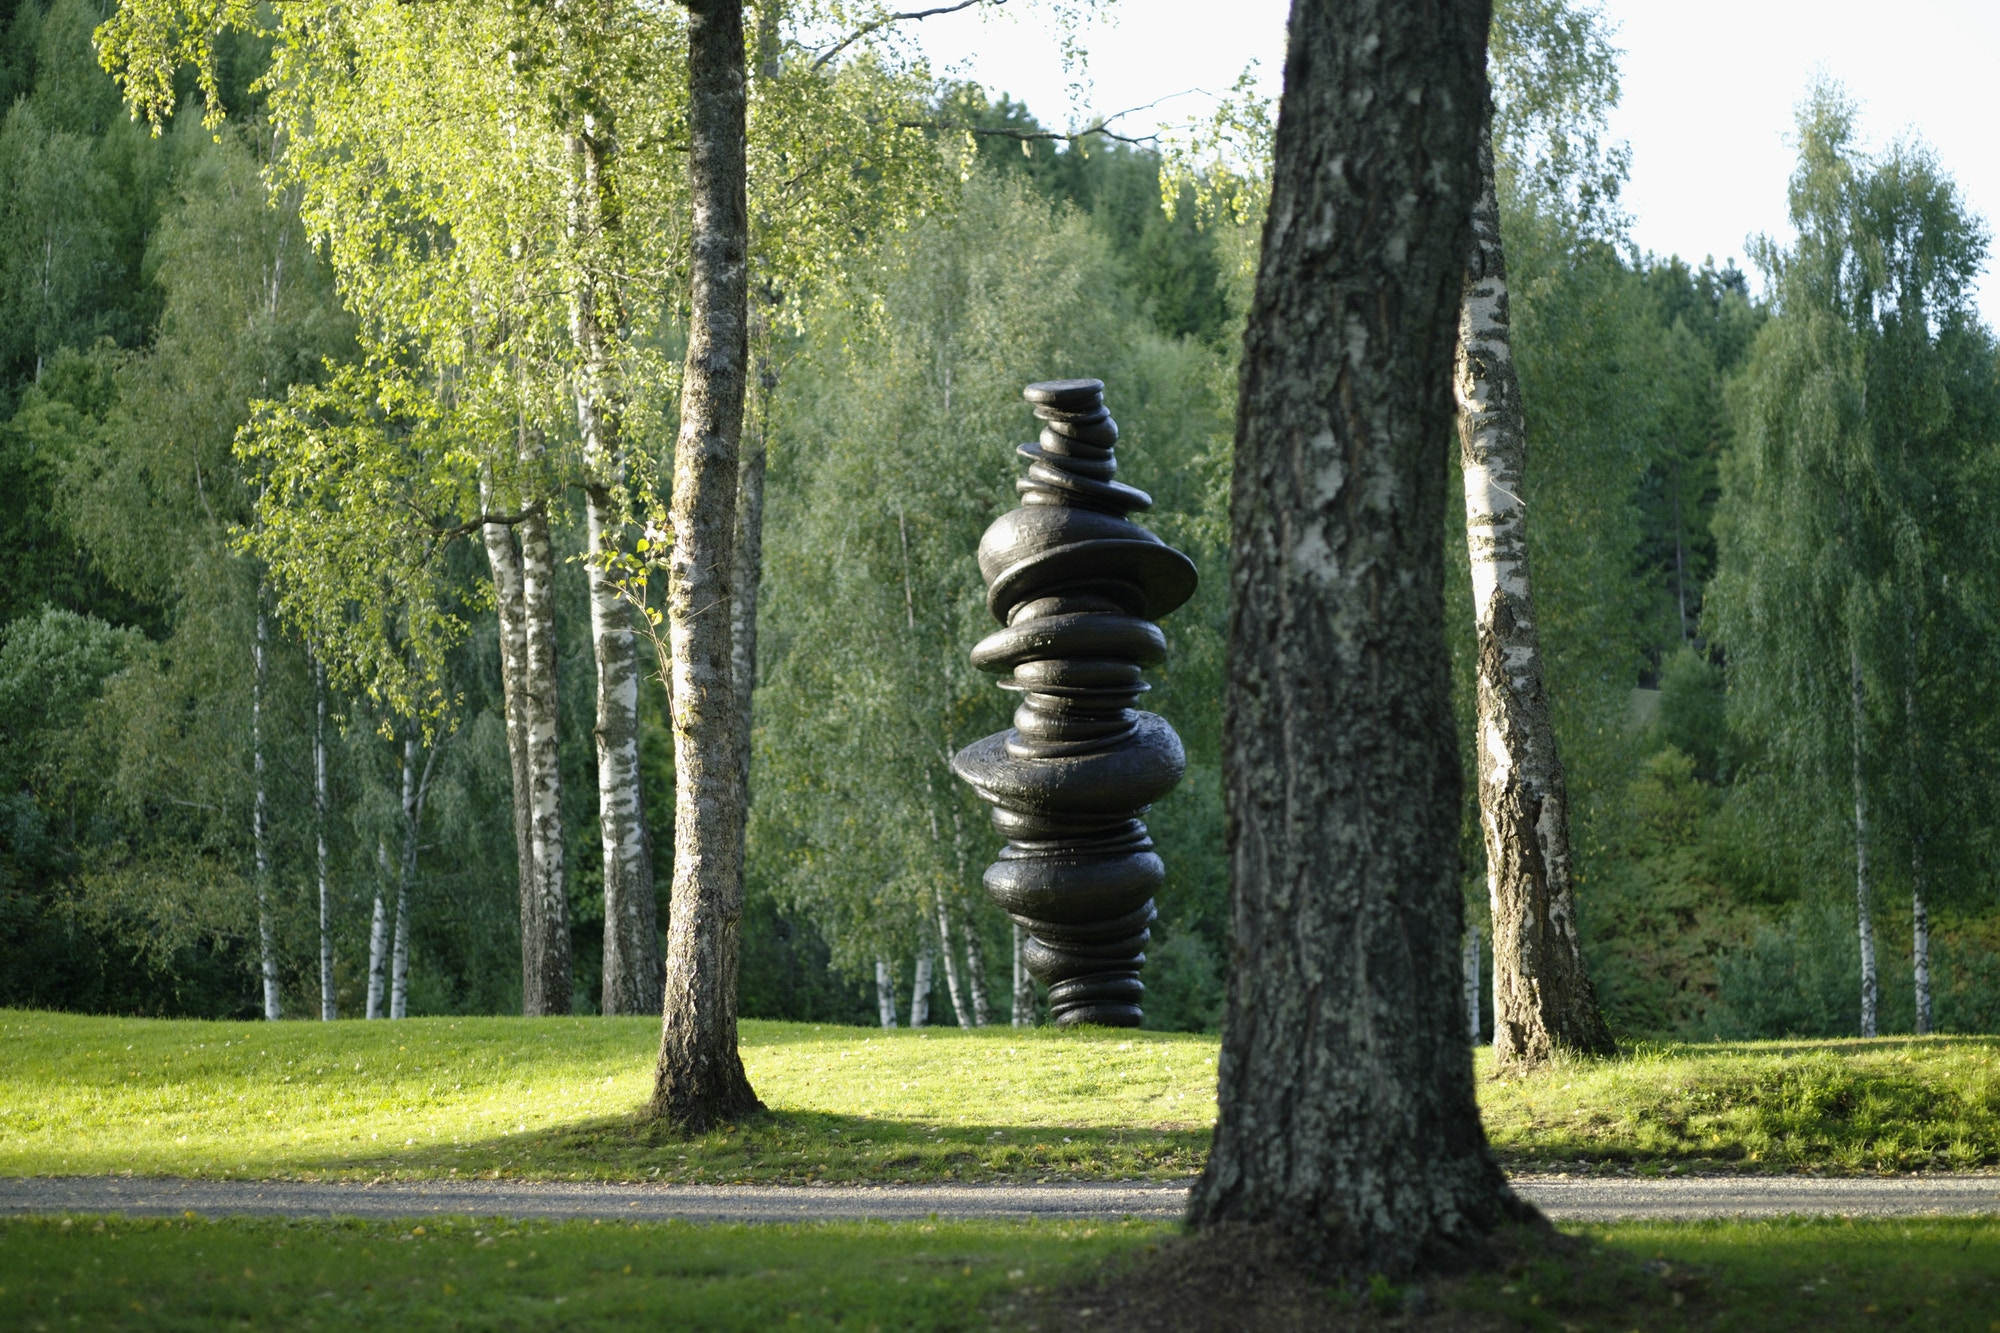 Sculpture, black, stones placed on top of each other. Nature, green.